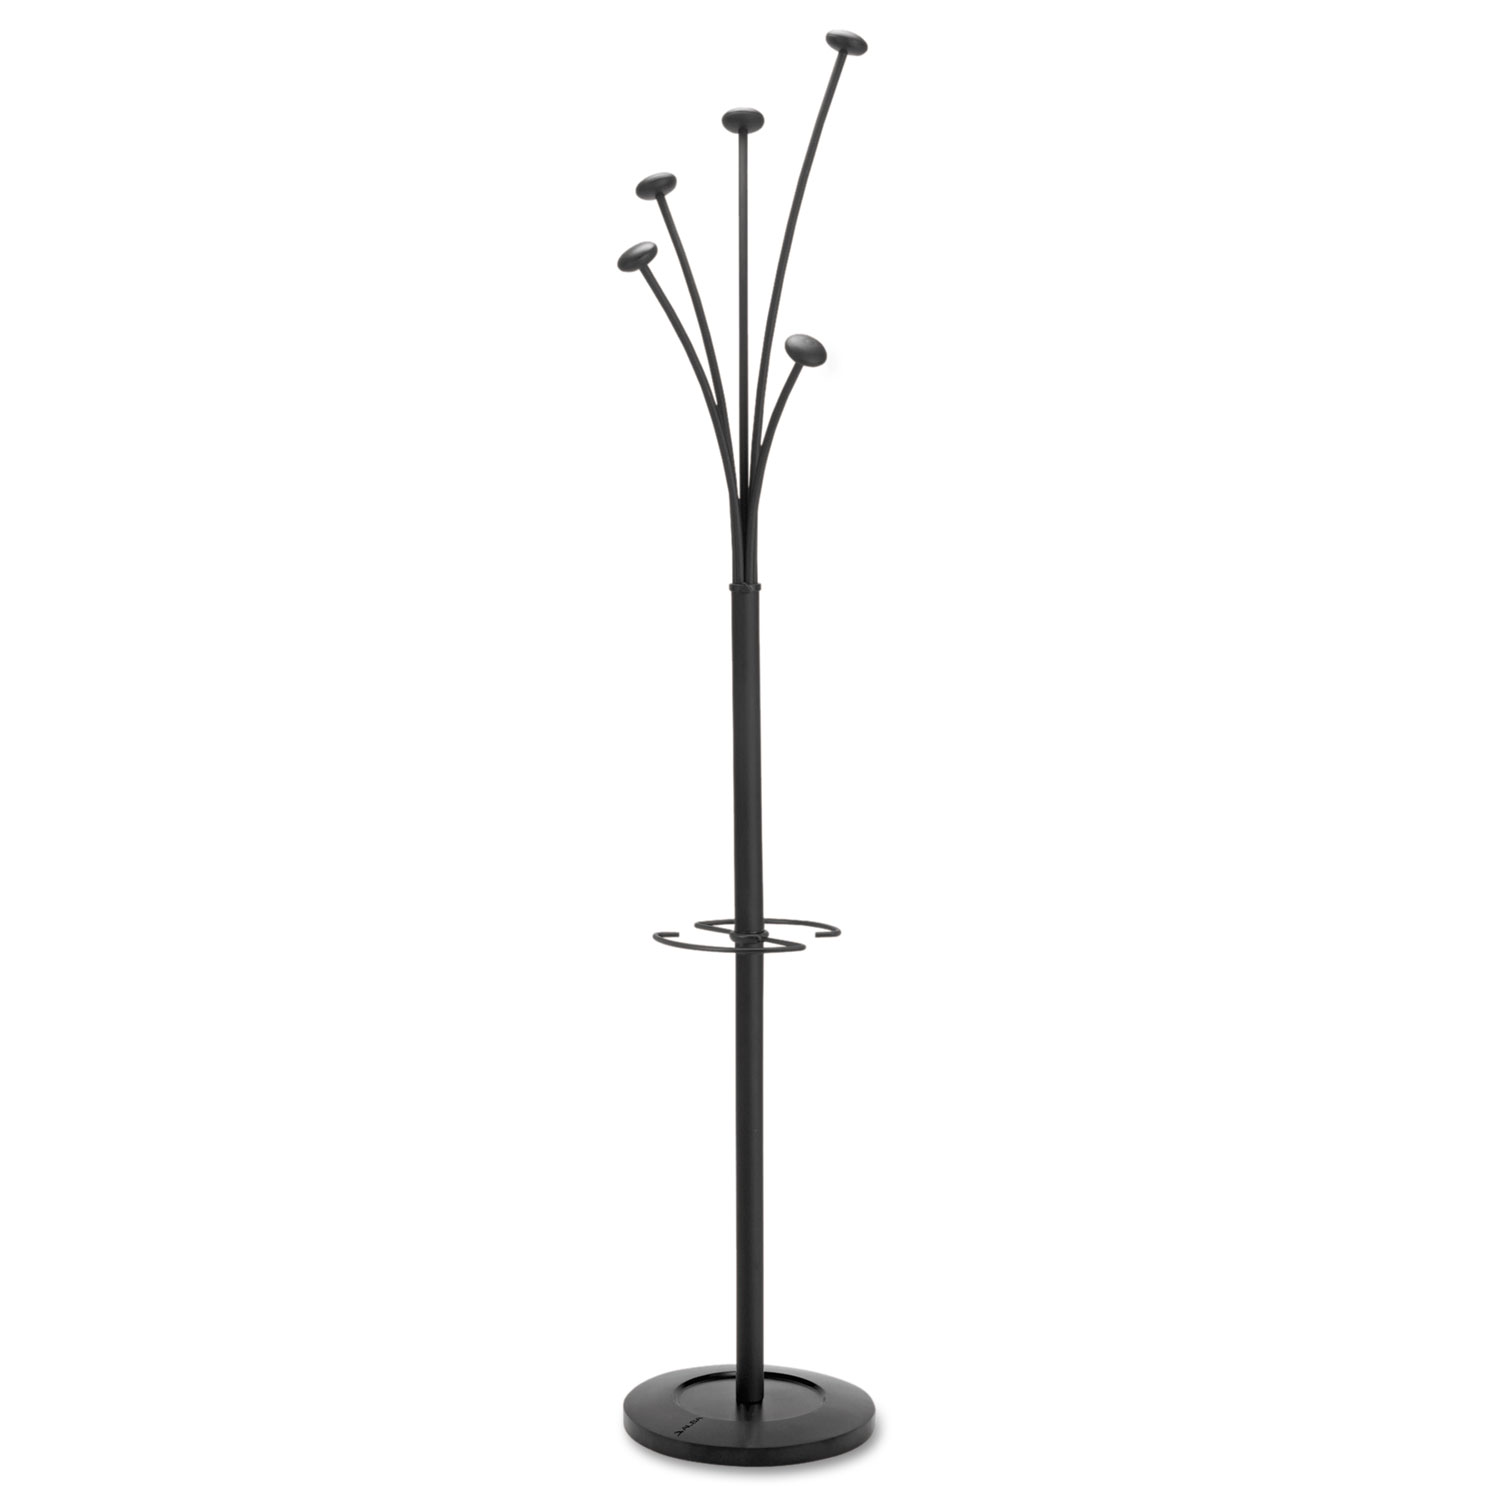 Festival Coat Stand with Umbrella Holder, 5 Knobs, 14w x 14d x 73.67h, Black